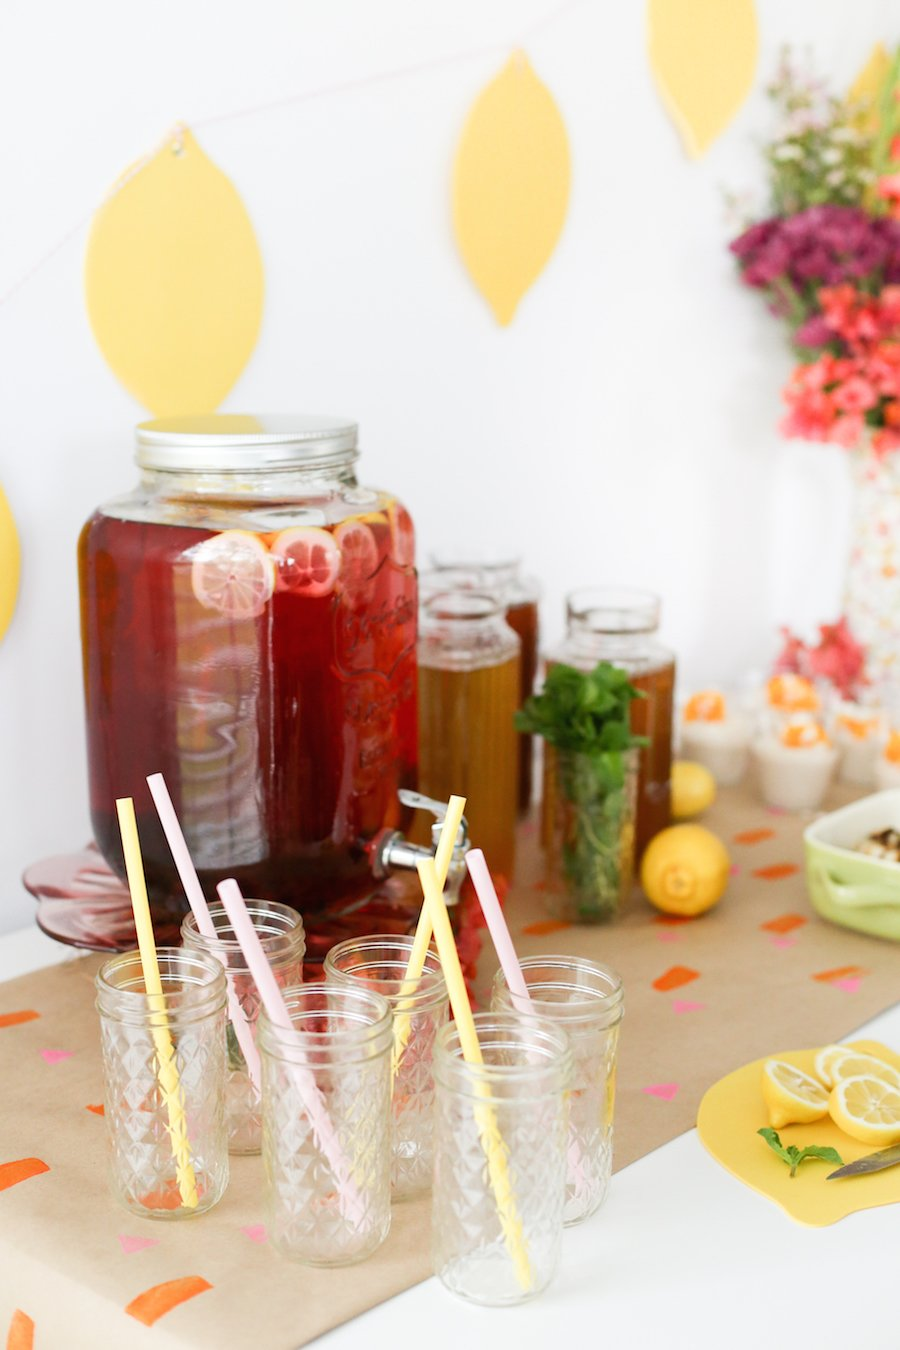 Southern Style Spring Brunch Iced Tea Party